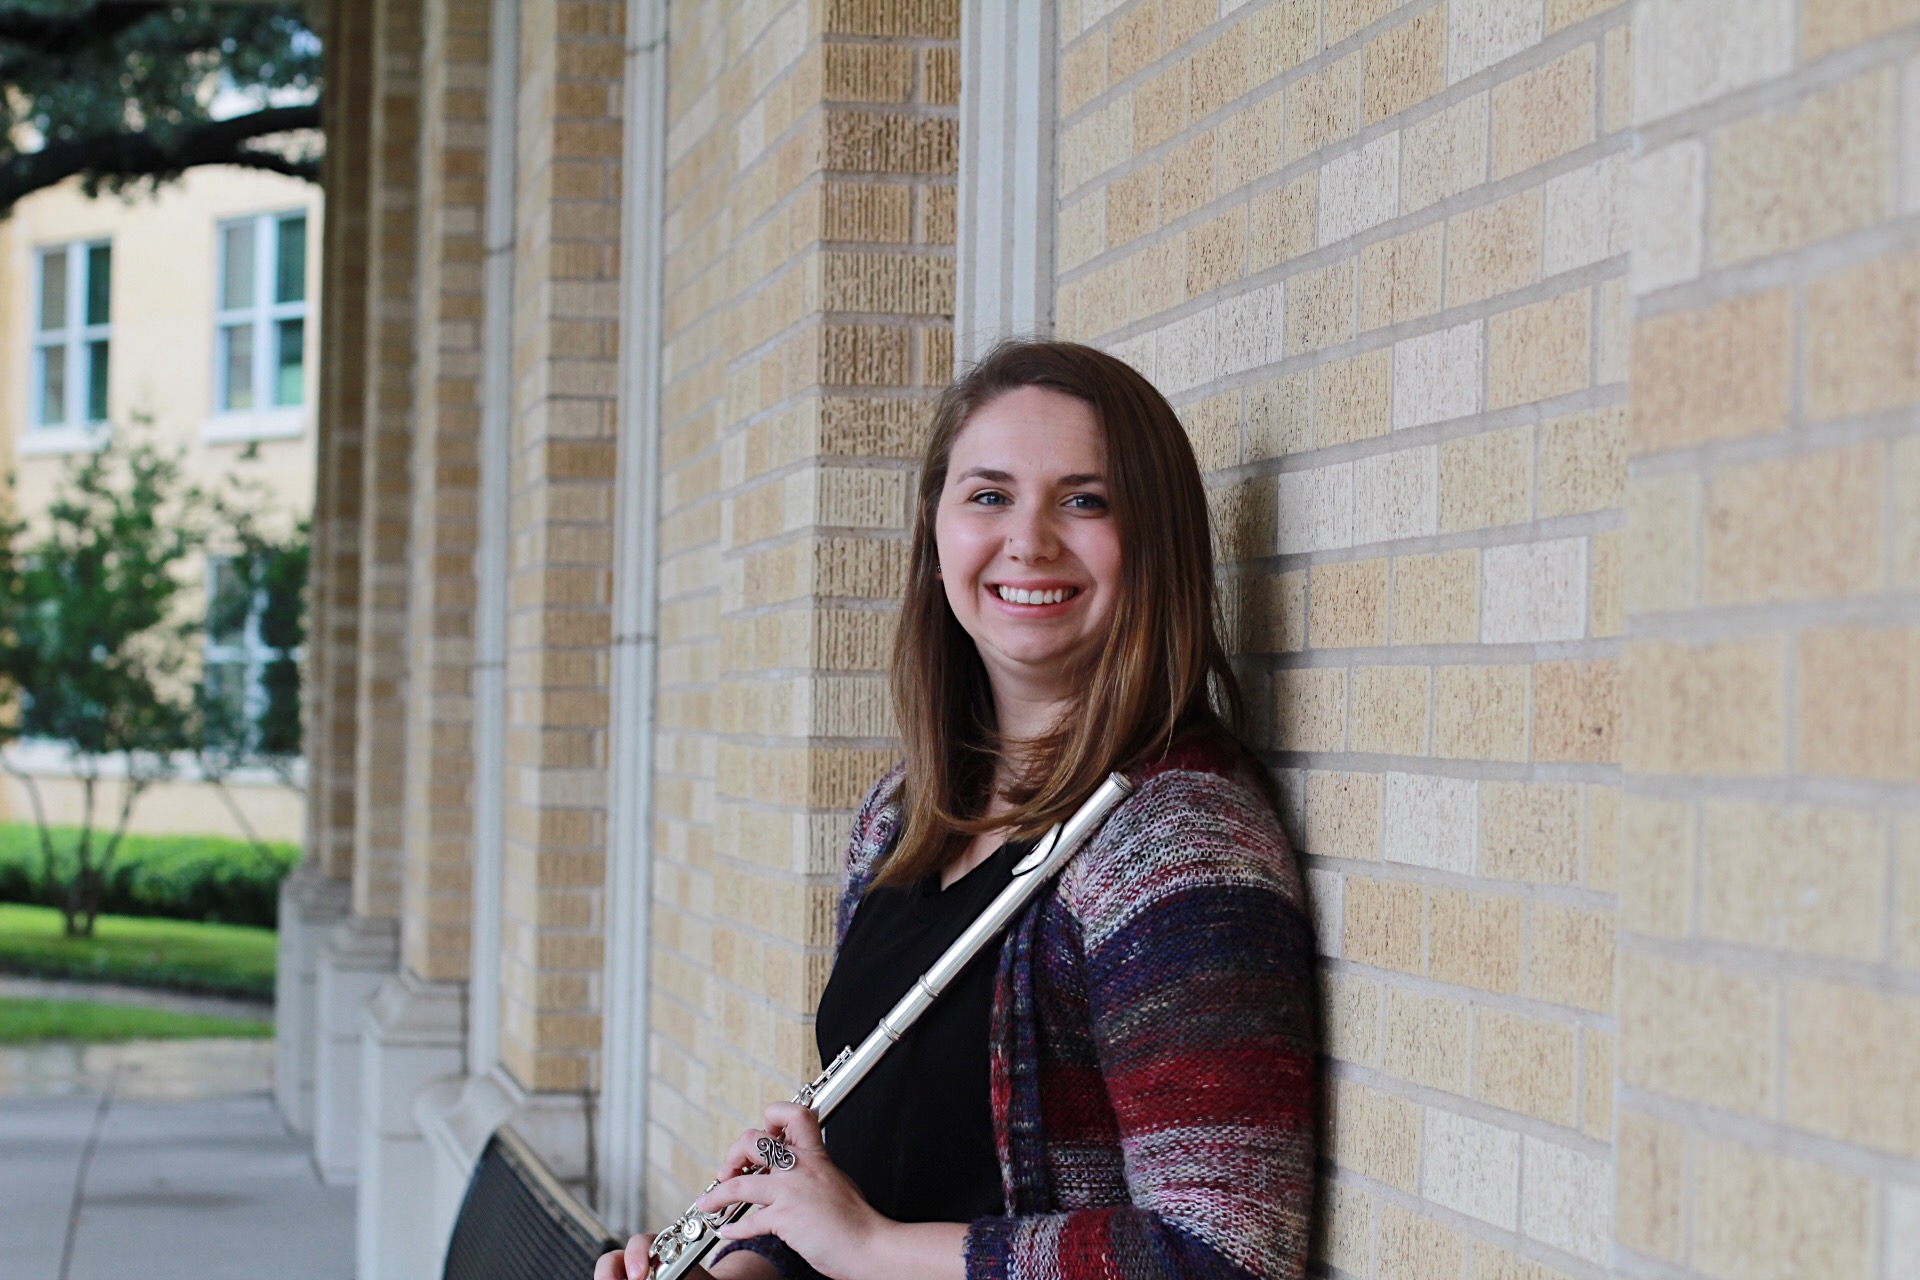 Regan Campbell - Regan Campbell is a flutist studying Music and English at Texas Christian University. She began playing flute in Junior High and has loved it ever since. While she loves playing in ensembles and orchestras, her favorite way to present music is by playing with her younger brother. Regan plans to Graduate in May of 2019 and hopes to continue teaching and performing as well as earning her masters degree in English.